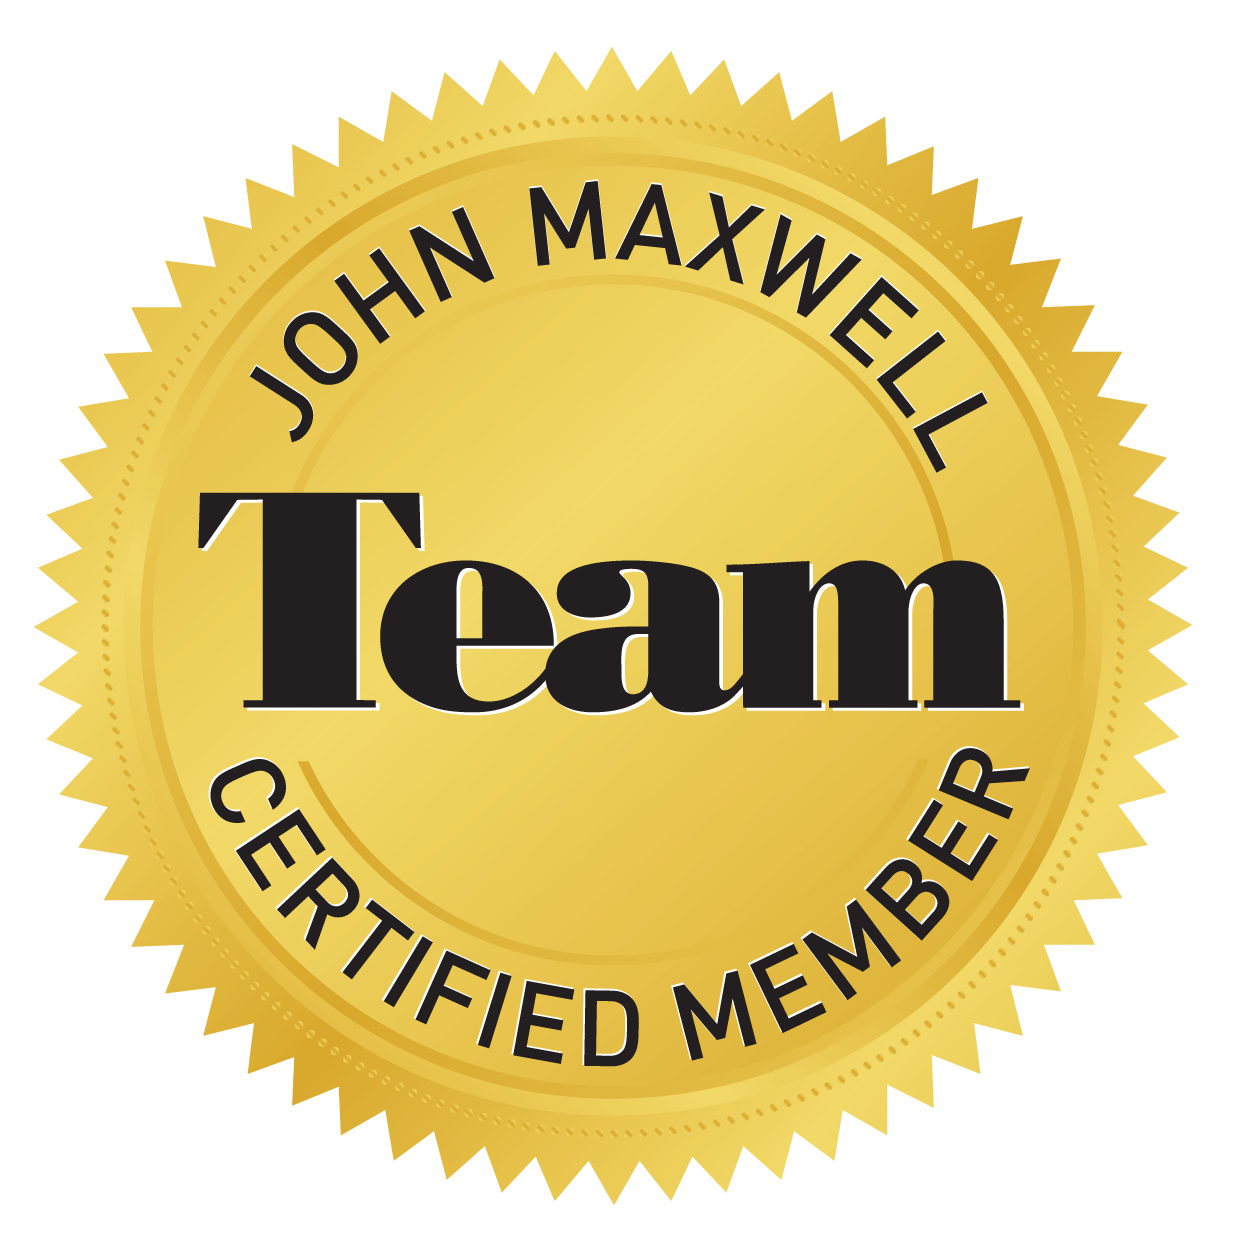 Joel Rissinger is a John Maxwell Team Certified Speaker